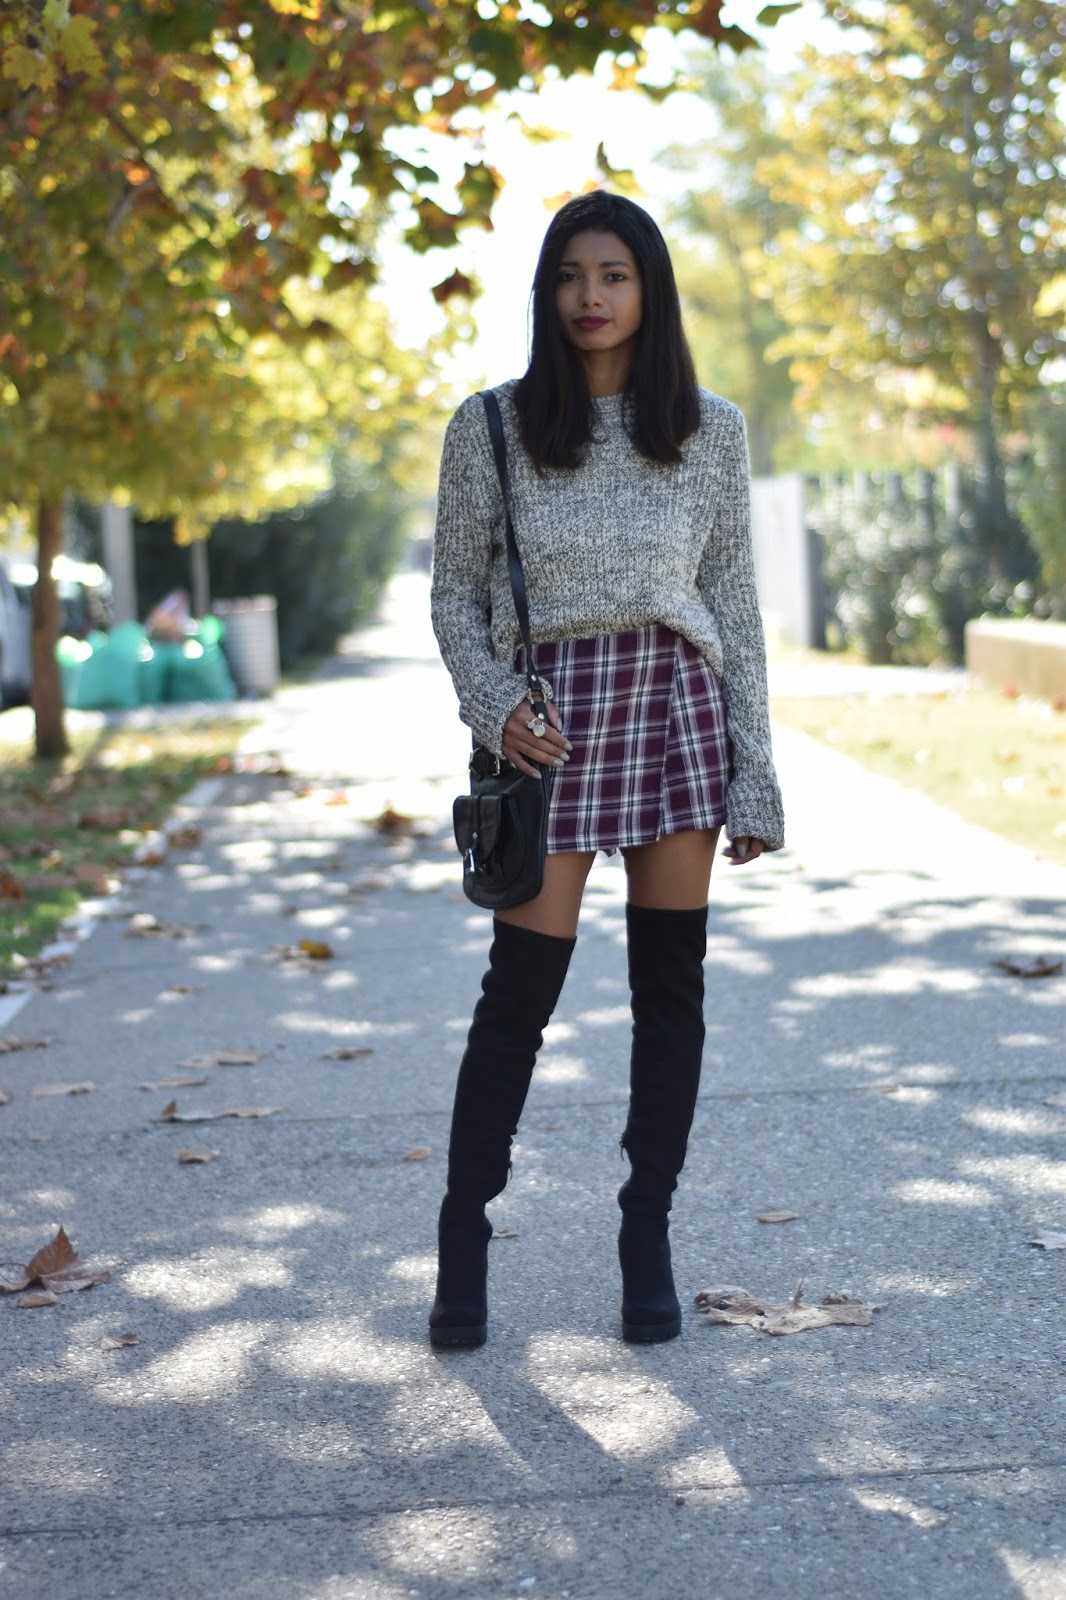 k meets style TiverIsland thigh boots topshot tartan skorts and cozy sweater